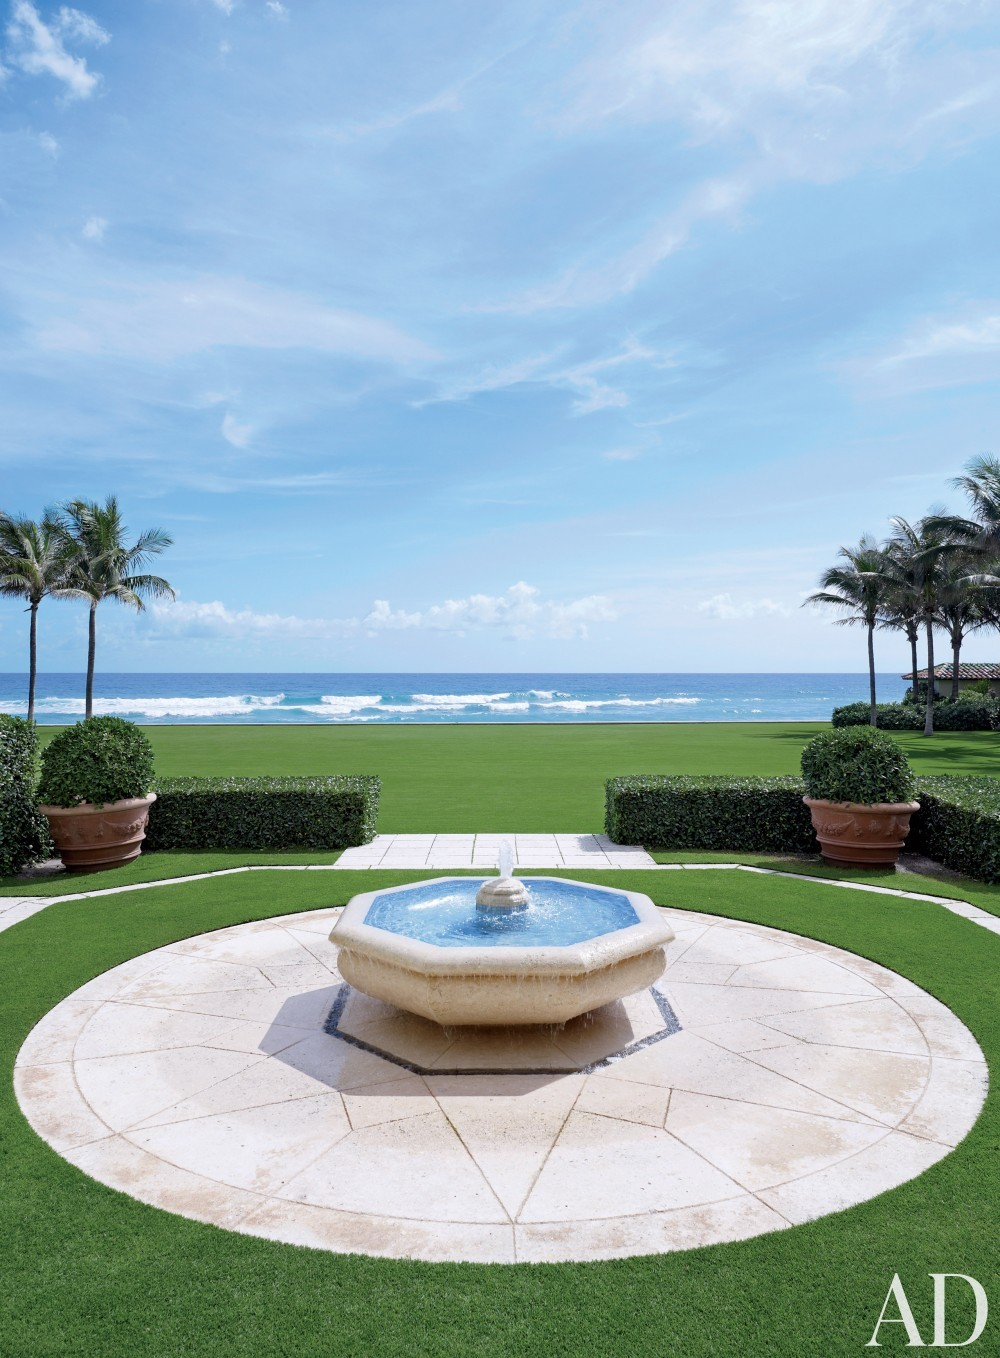 Traditional Outdoor Space by David Easton Inc. and Addison Mizner in Palm Beach, FL